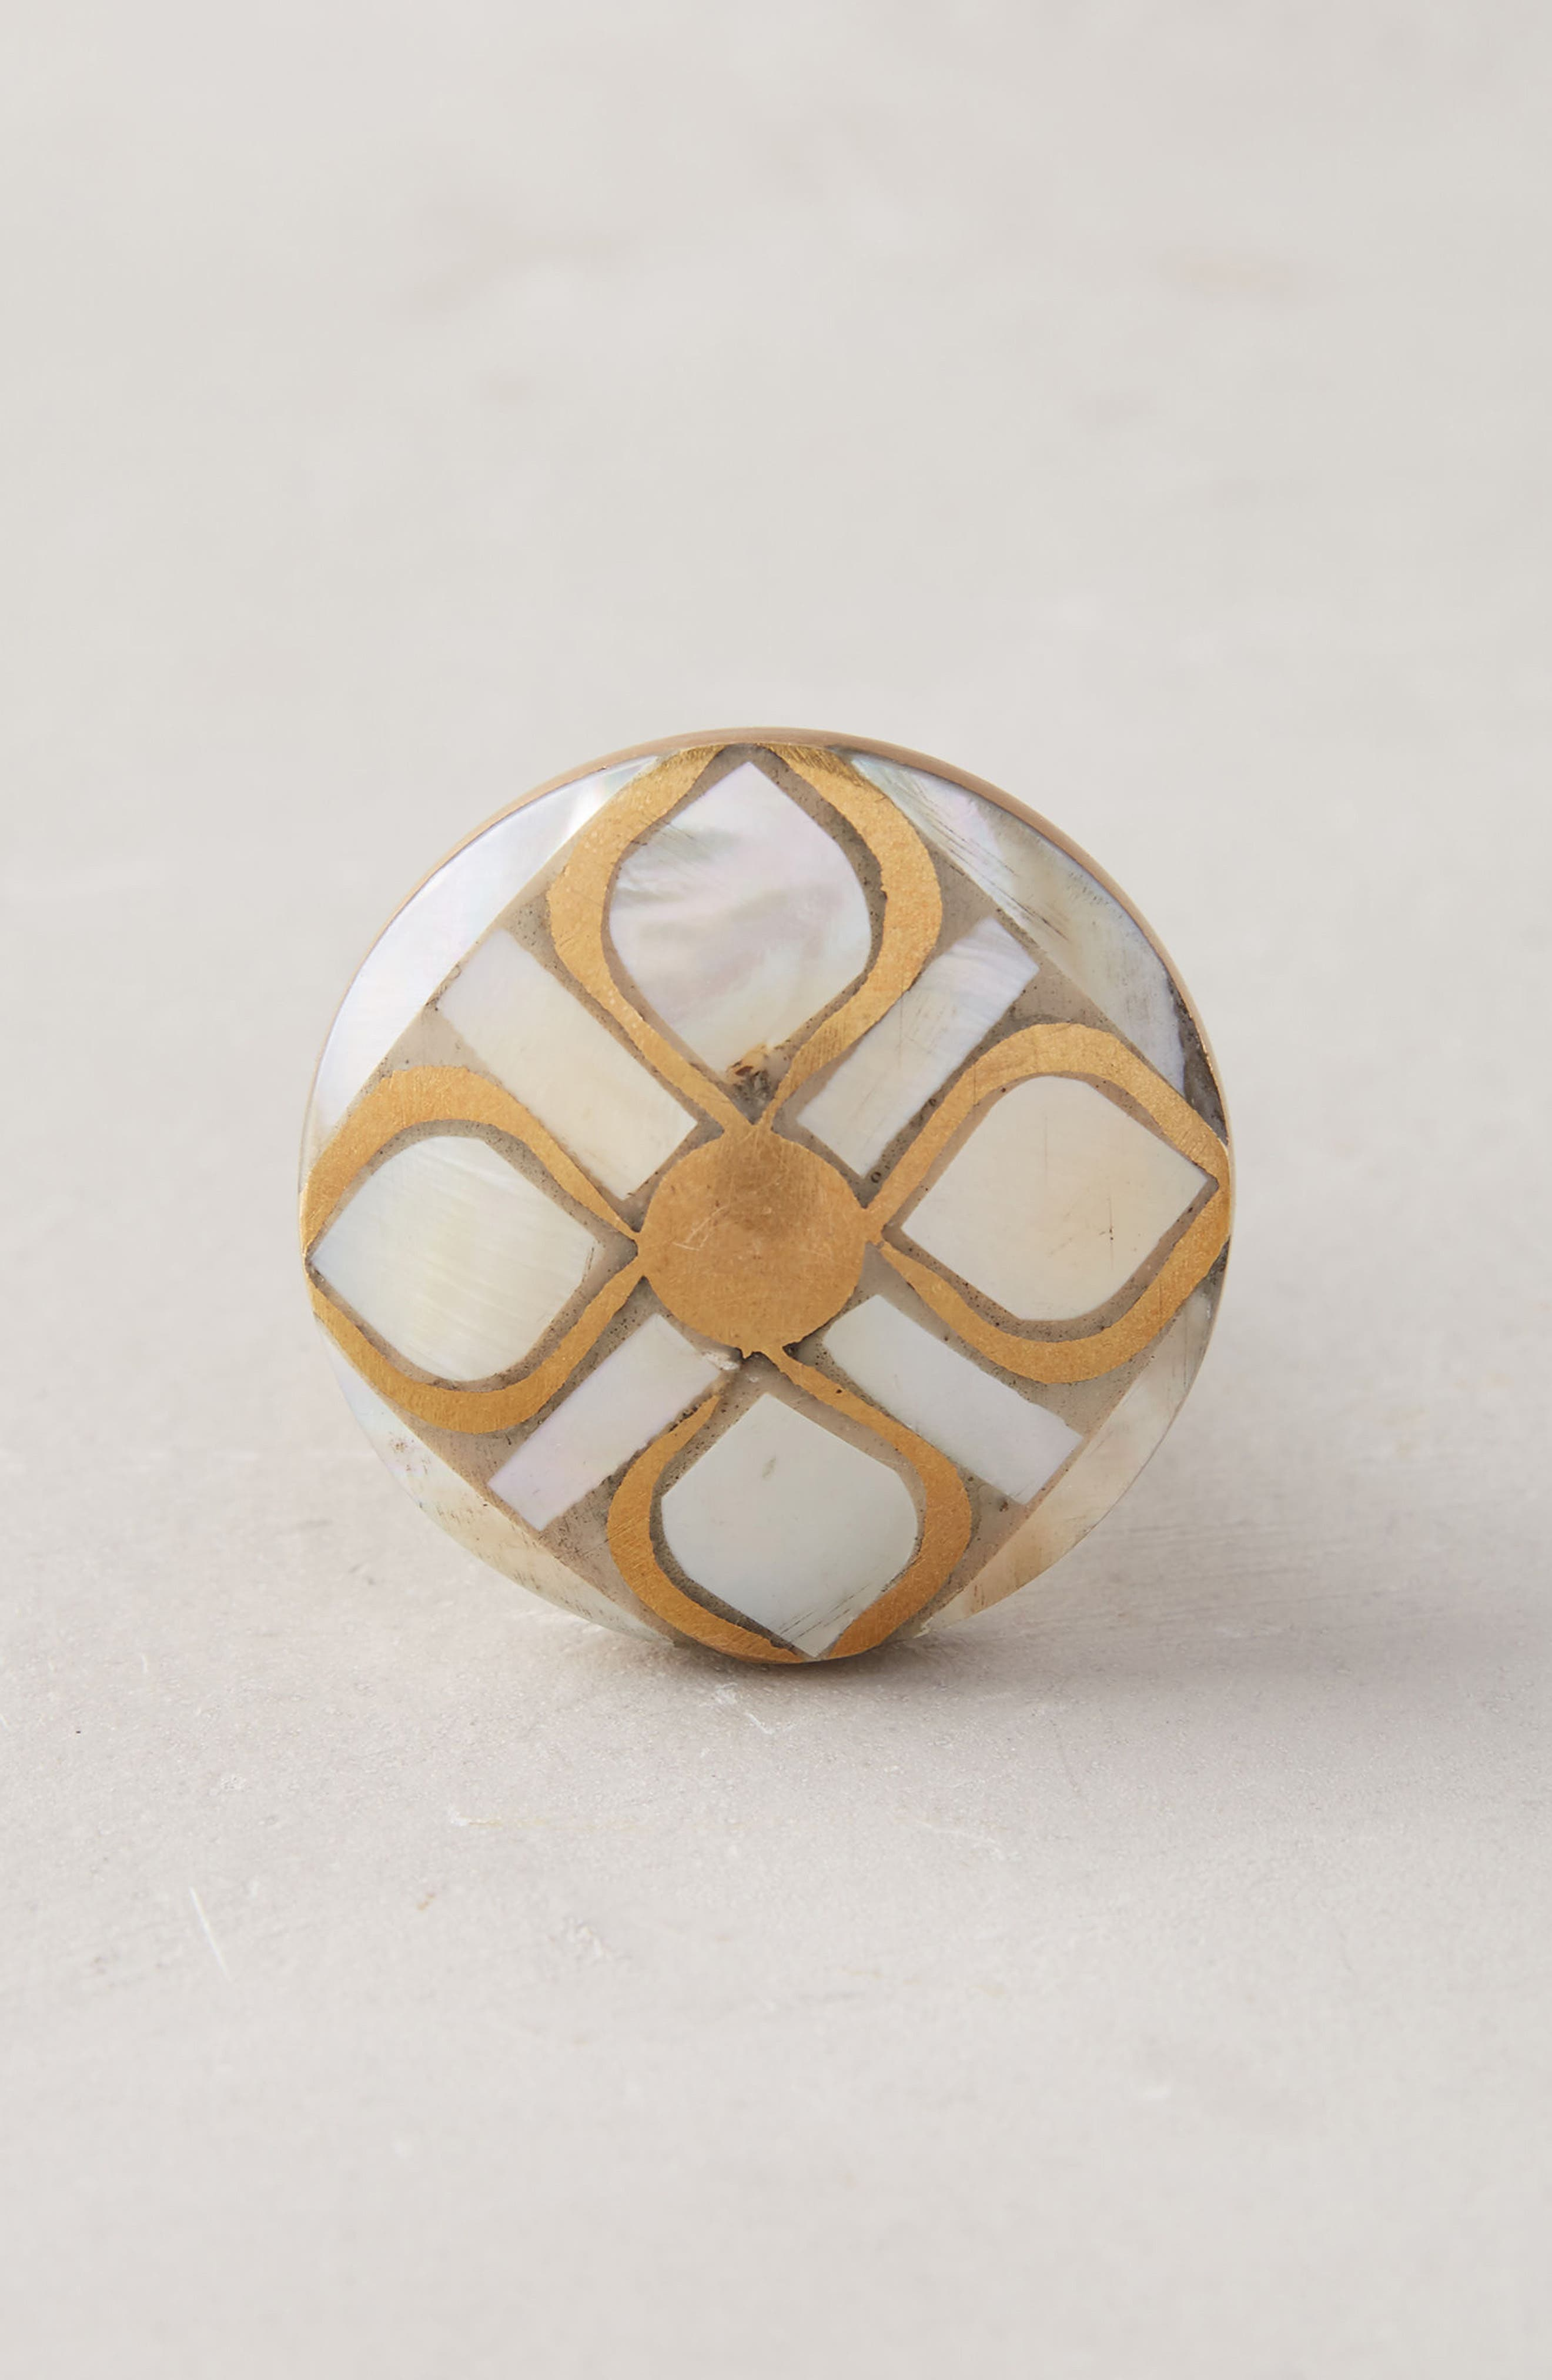 ANTHROPOLOGIE,                             Serpentine Mother of Pearl Knob,                             Main thumbnail 1, color,                             250